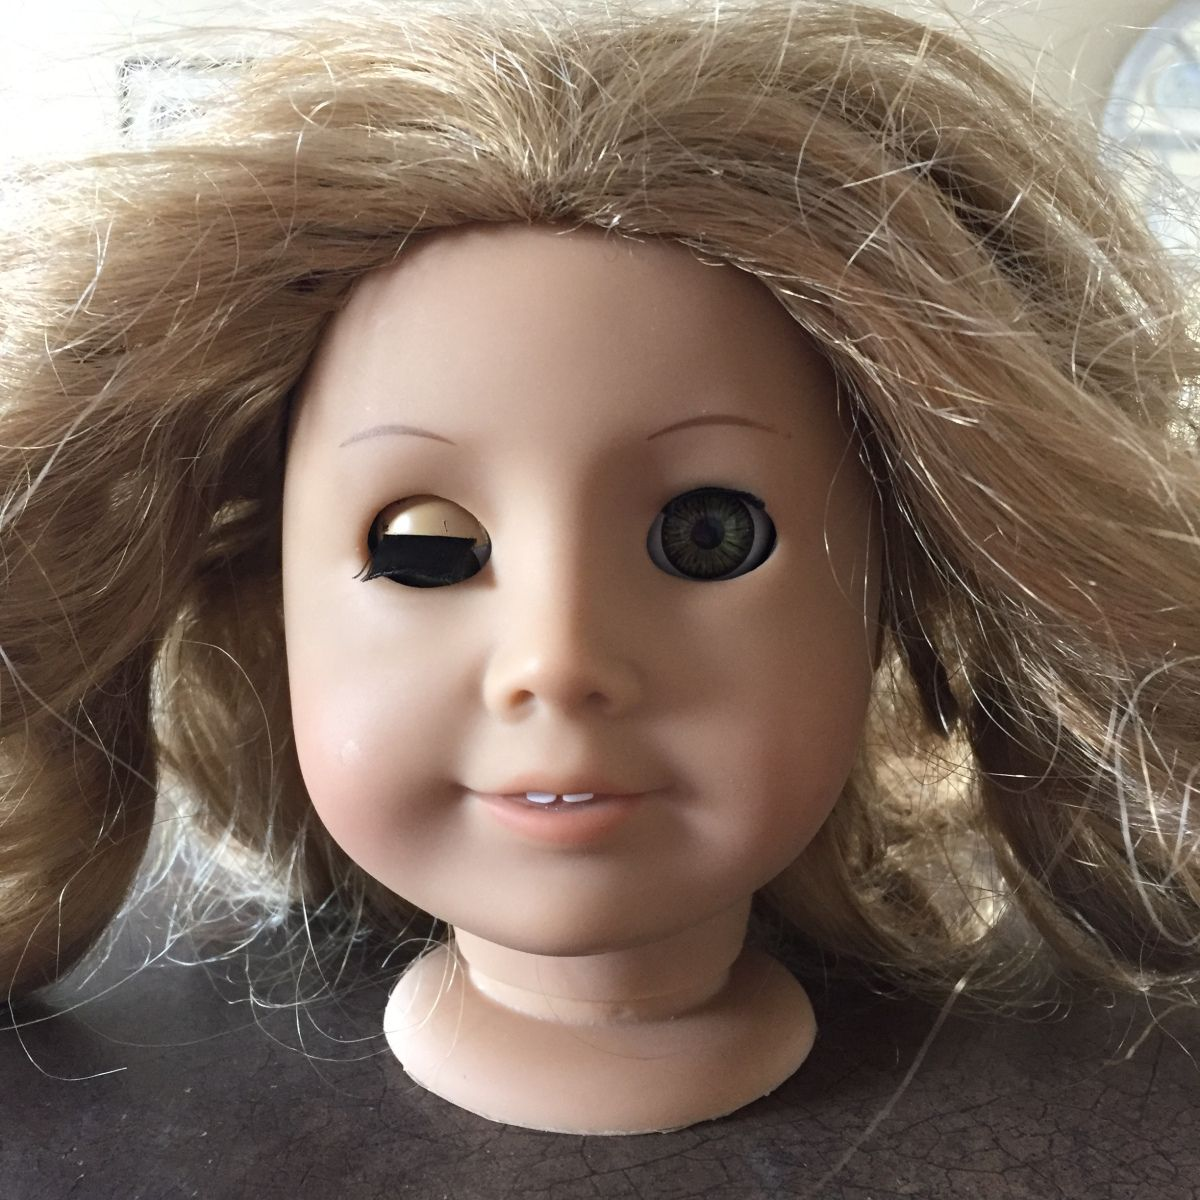 Fixing a Doll with a Broken Eye Nub | American Girl Doll